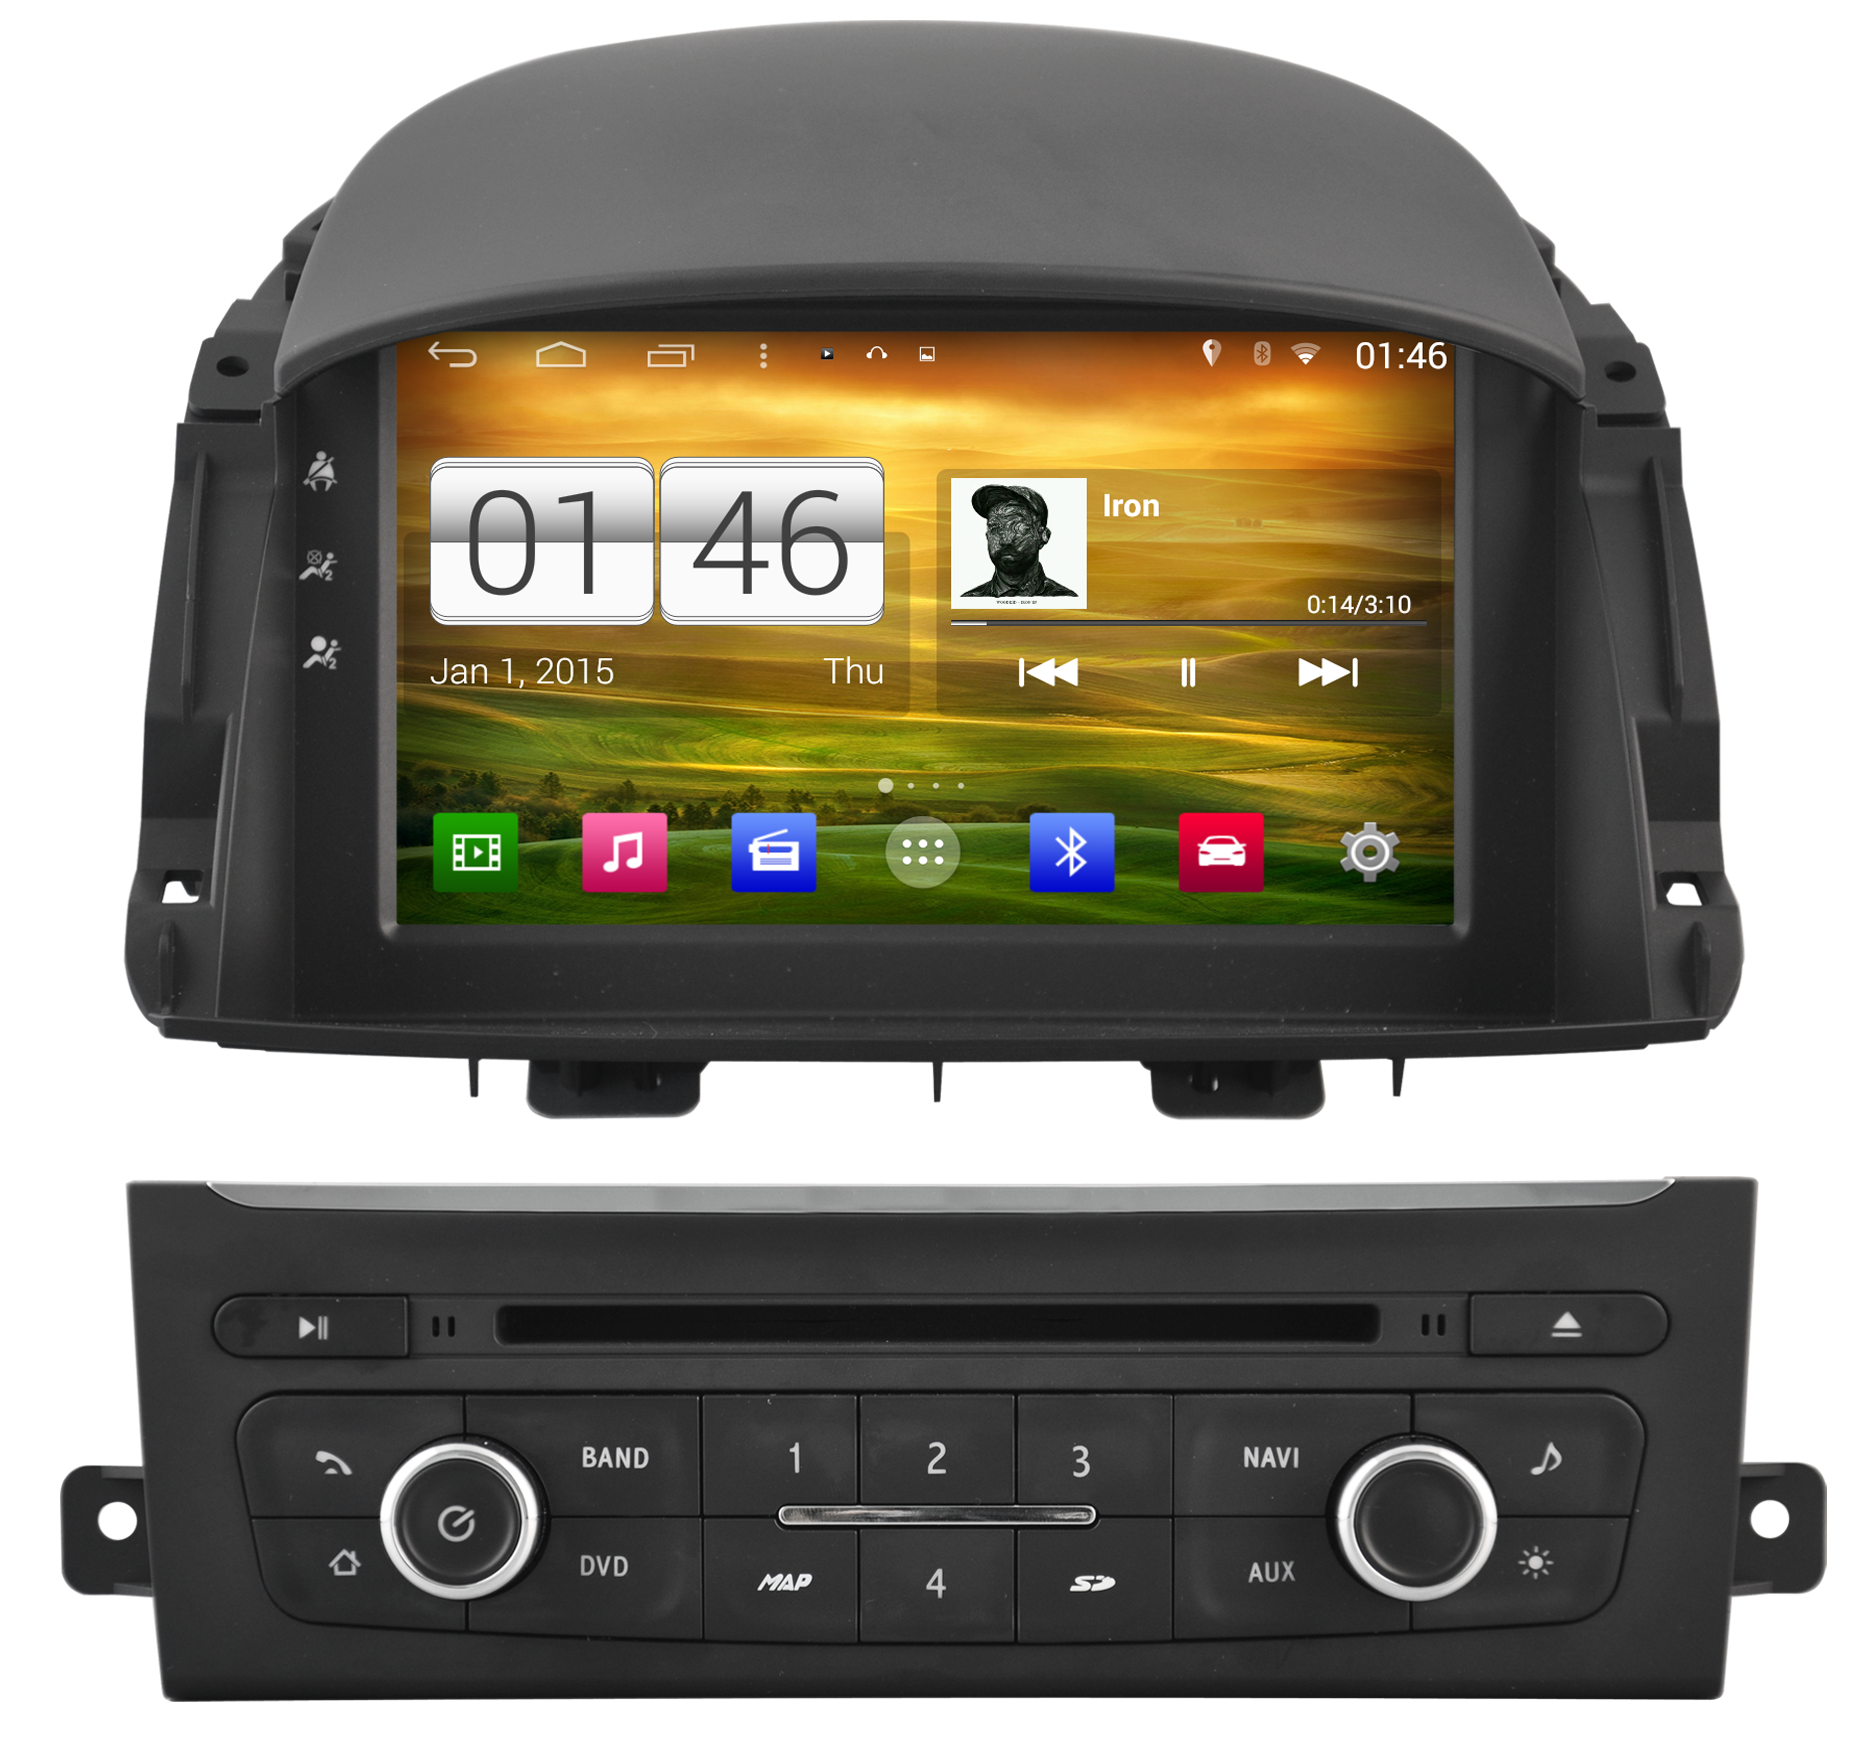 achetez votre autoradio android gps renault koleos cran tactile dvd usb hightech. Black Bedroom Furniture Sets. Home Design Ideas